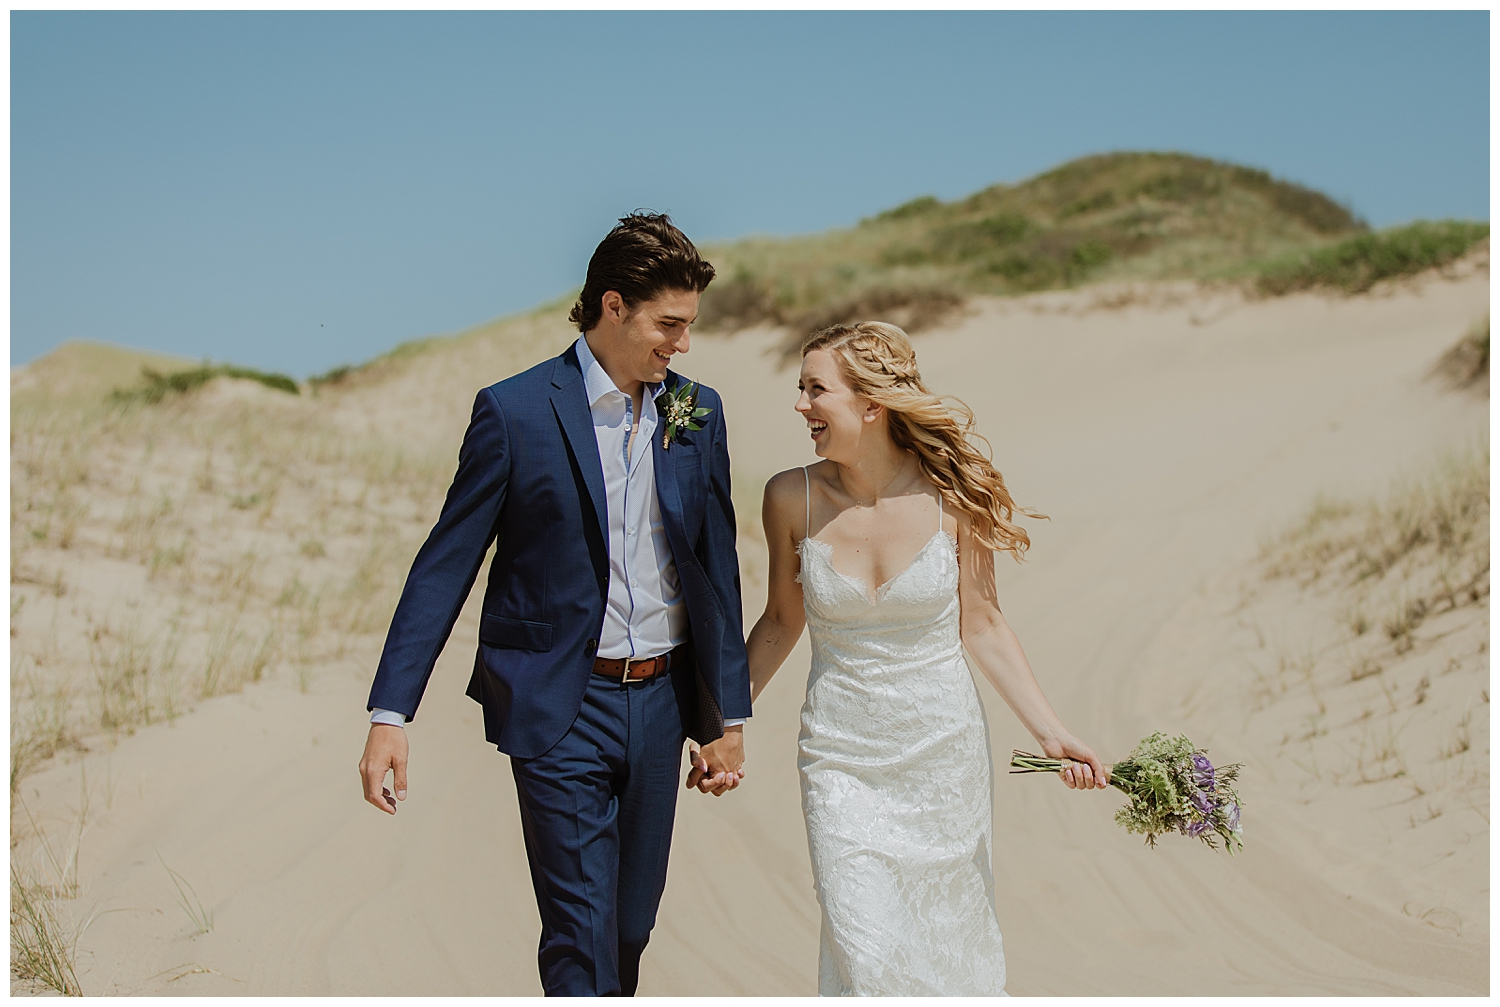 Emily + Nick Provincetown Cape Cod MA Elopement- 111.jpg